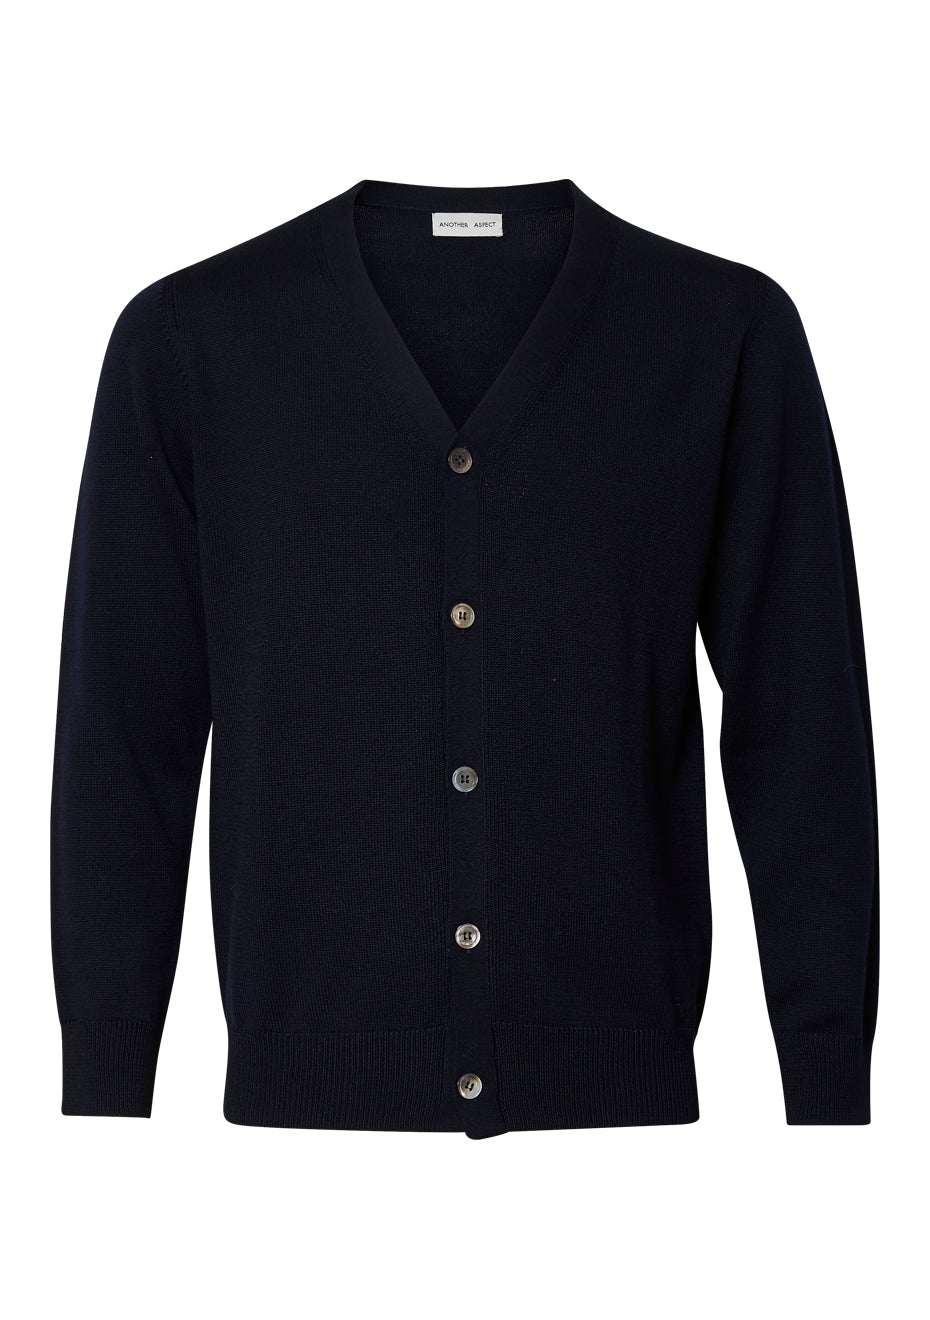 Another Navy Knitted Cardigan